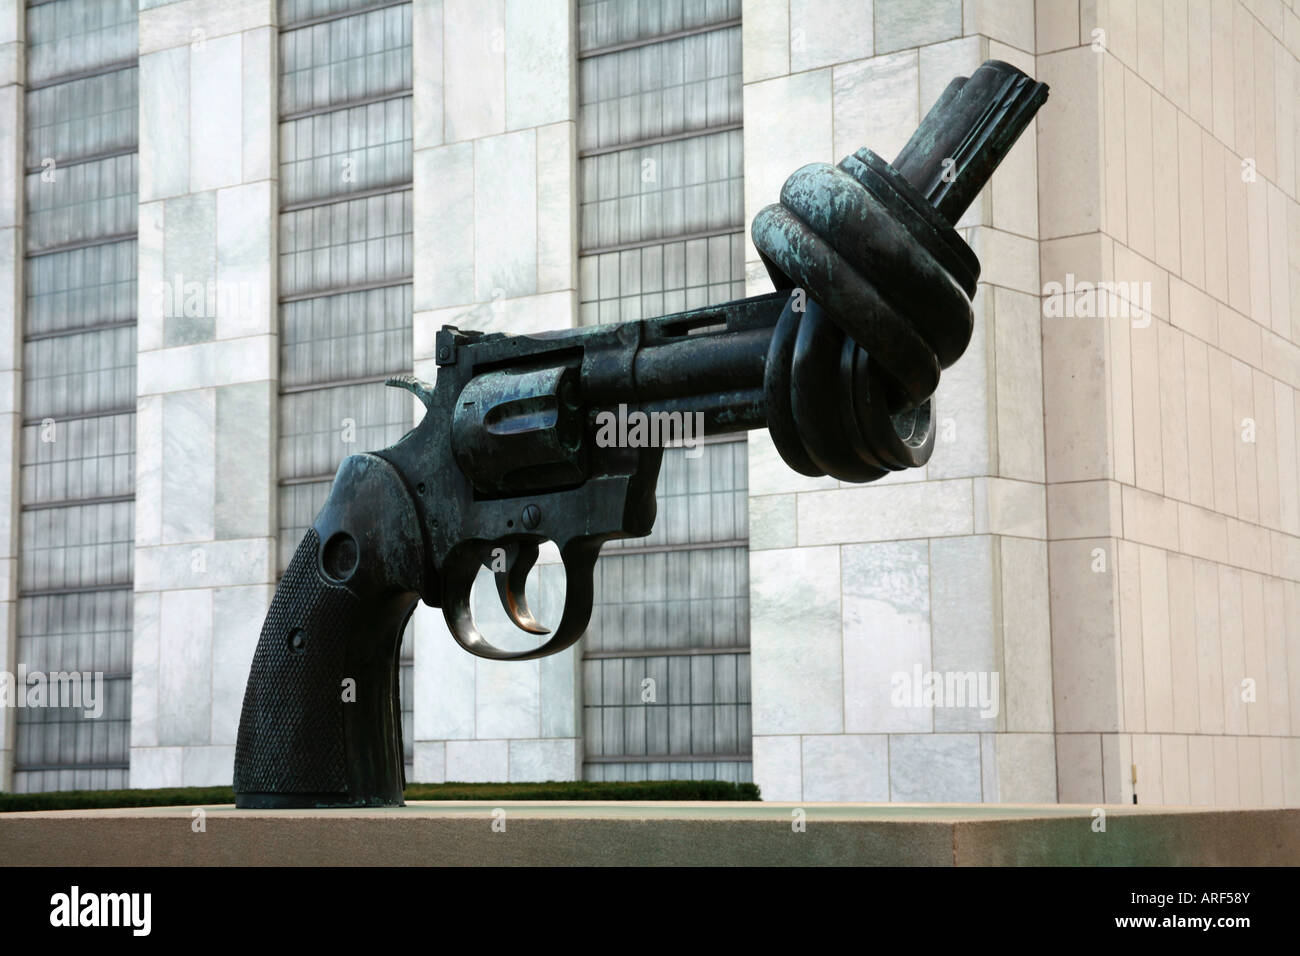 United Nations NonViolence Gun Sculpture a replica of the same scuplture to be found in Cape Town - Stock Image